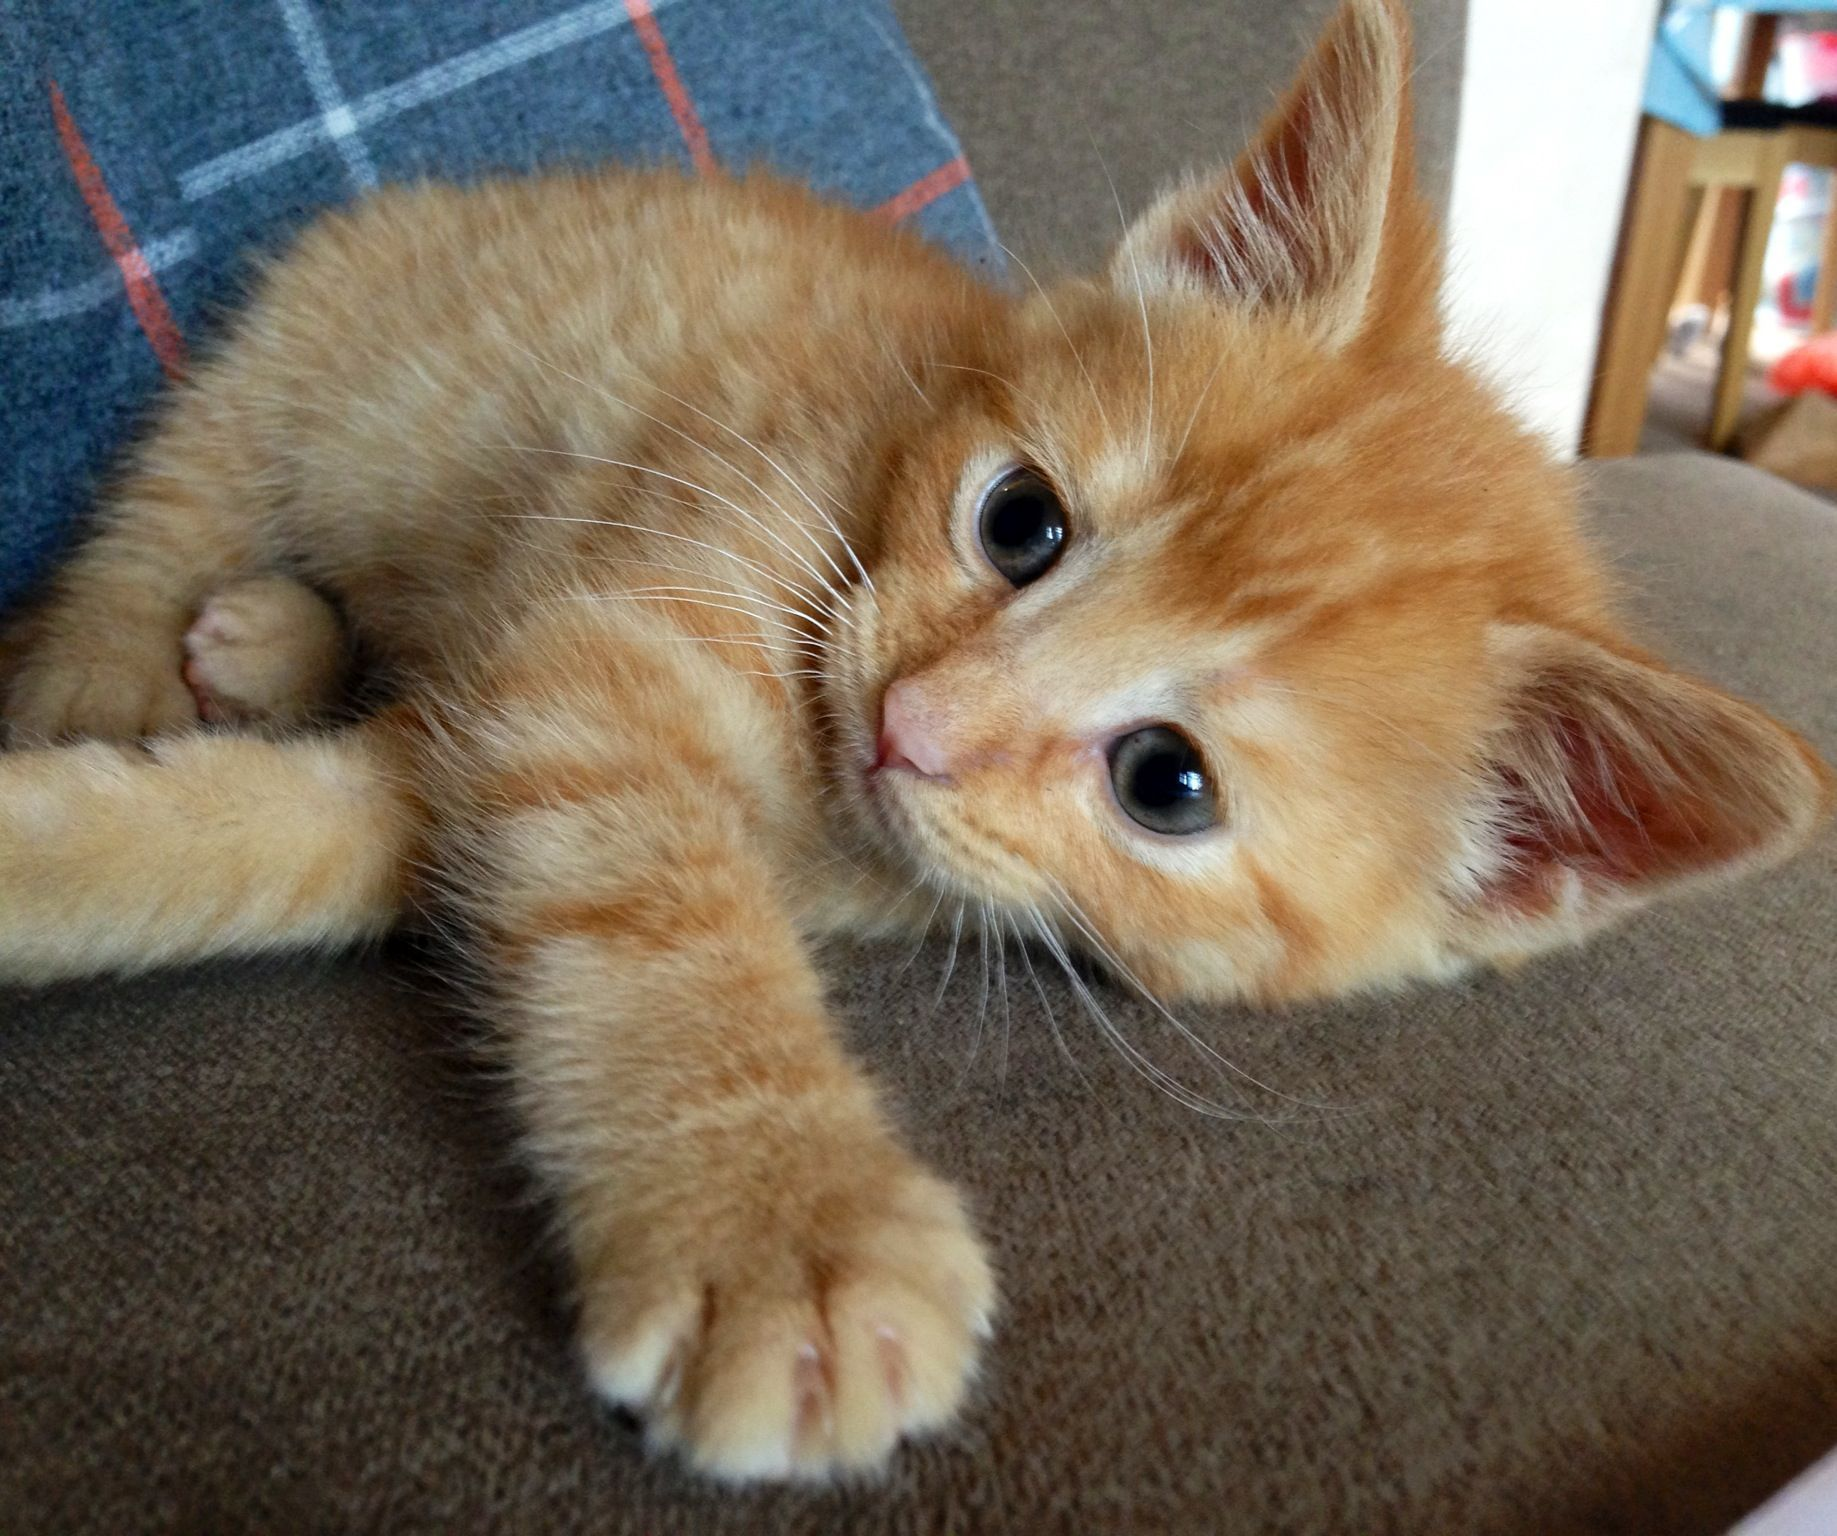 Obi Wan Katnobi Ginger Kitten Cute Gingerkitten Obi Wan Katnobi Ginger Kitten Cute Gingerkitten Obi Wan Katnobi Gin Cute Cats Kittens Cutest Baby Cats